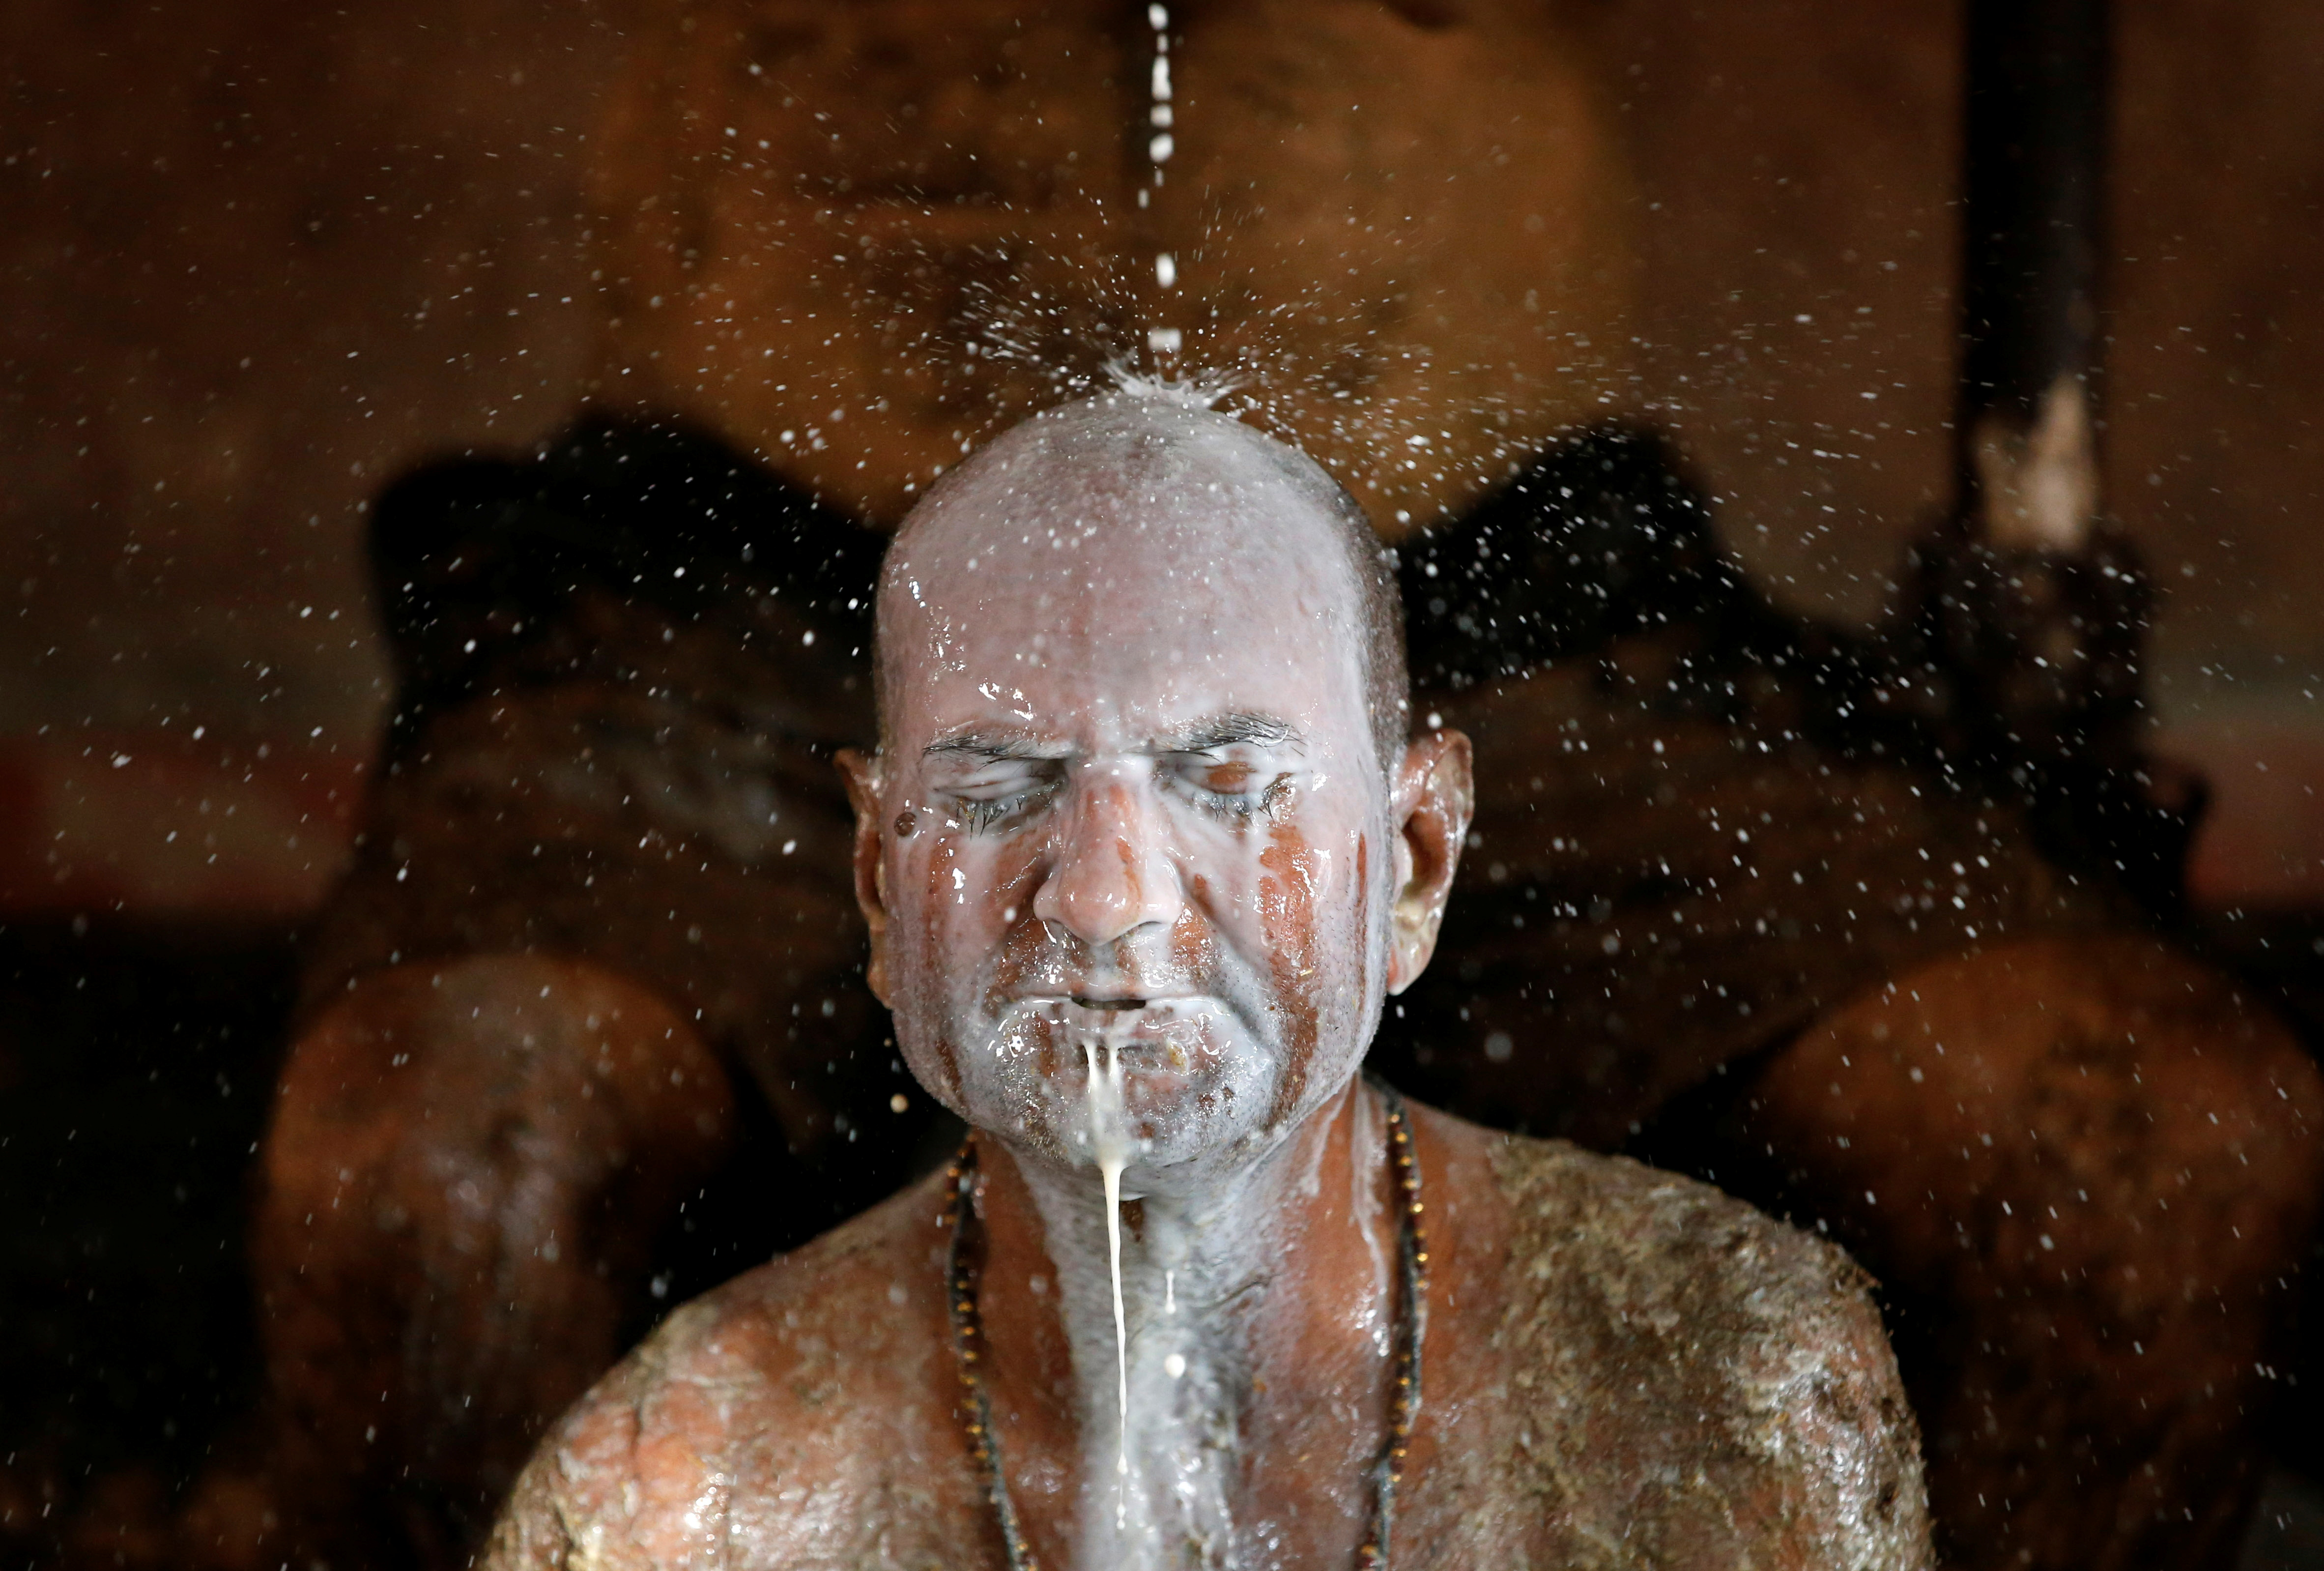 """Ashok Oza bathes in cow milk to remove cow dung from his body during """"cow dung therapy"""", believing it will boost his immunity to defend against the coronavirus disease (COVID-19) at the Shree Swaminarayan Gurukul Vishwavidya Pratishthanam Gaushala or cow shelter on the outskirts of Ahmedabad, India, May 9, 2021. REUTERS/Amit Dave"""